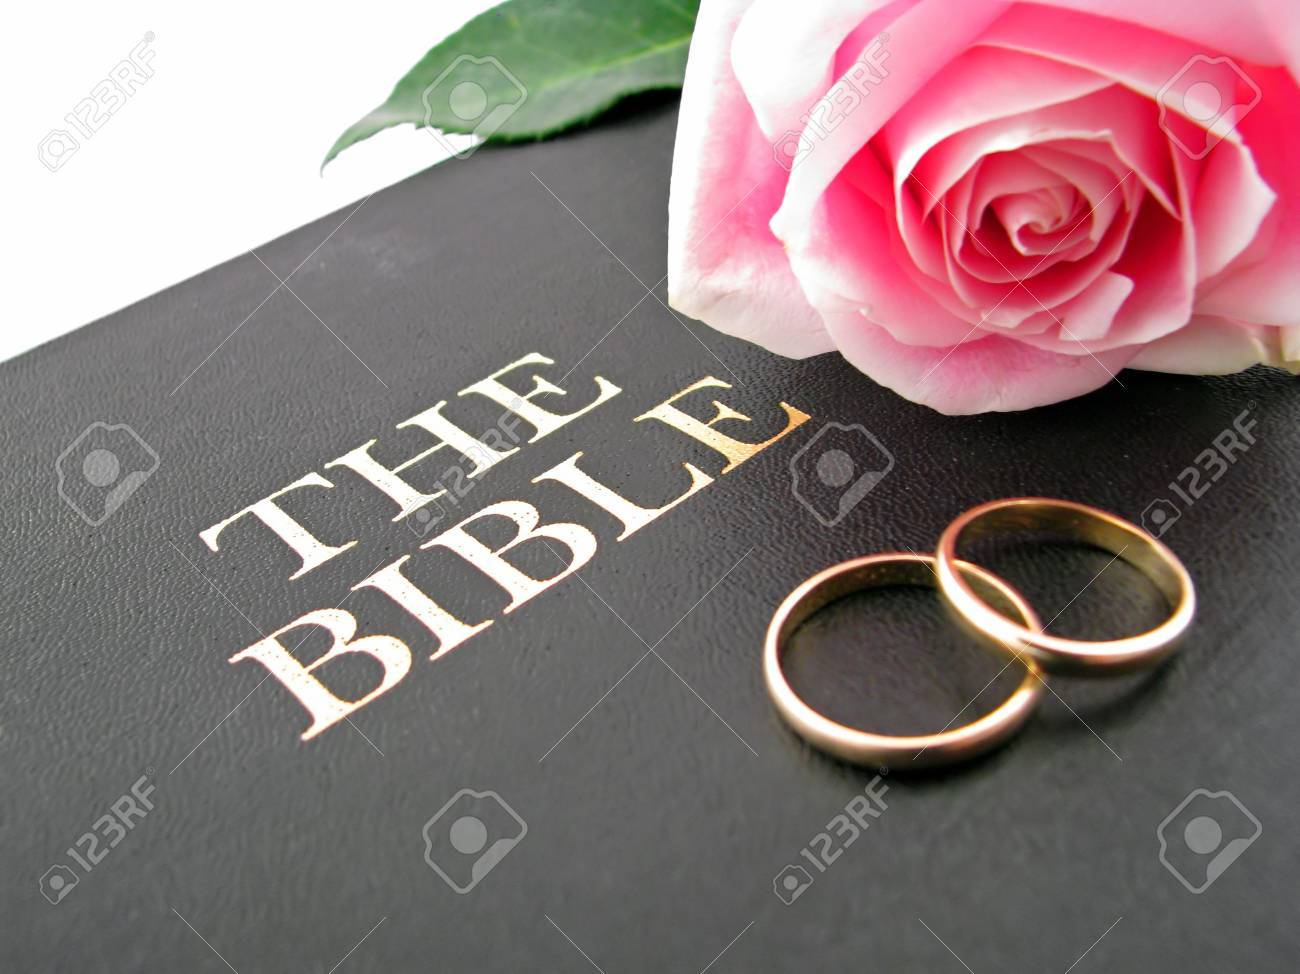 One Pink Rose And Two Wedding Bands On The Bible Stock Photo